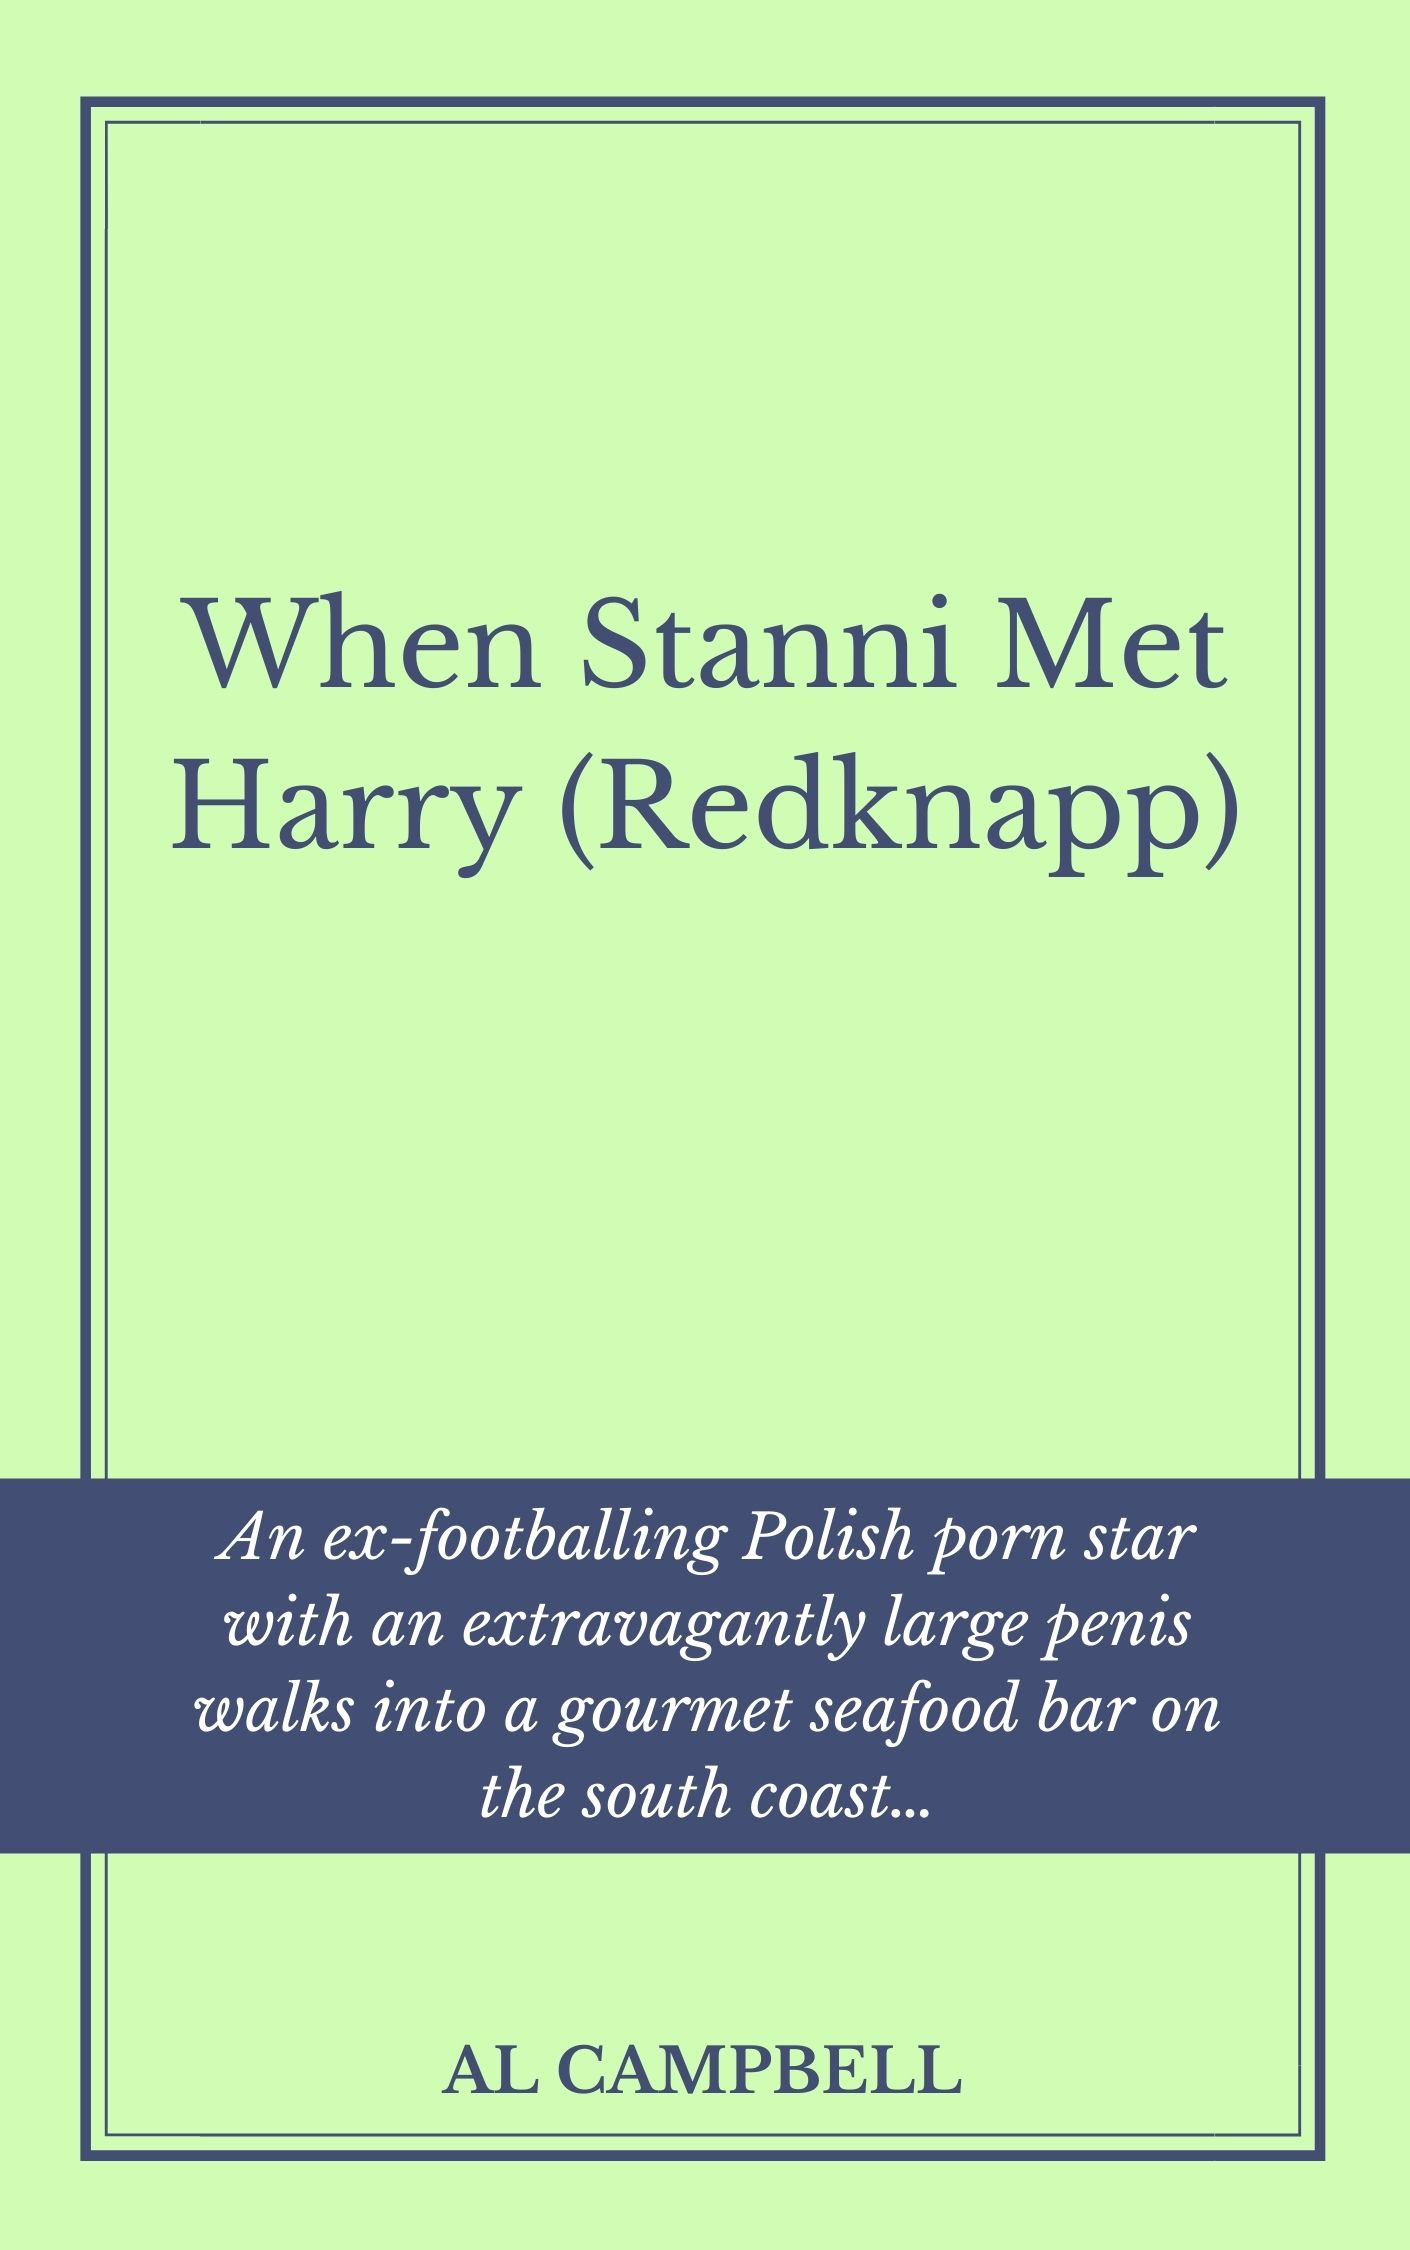 When Stanni Met Harry - By Al Campbell